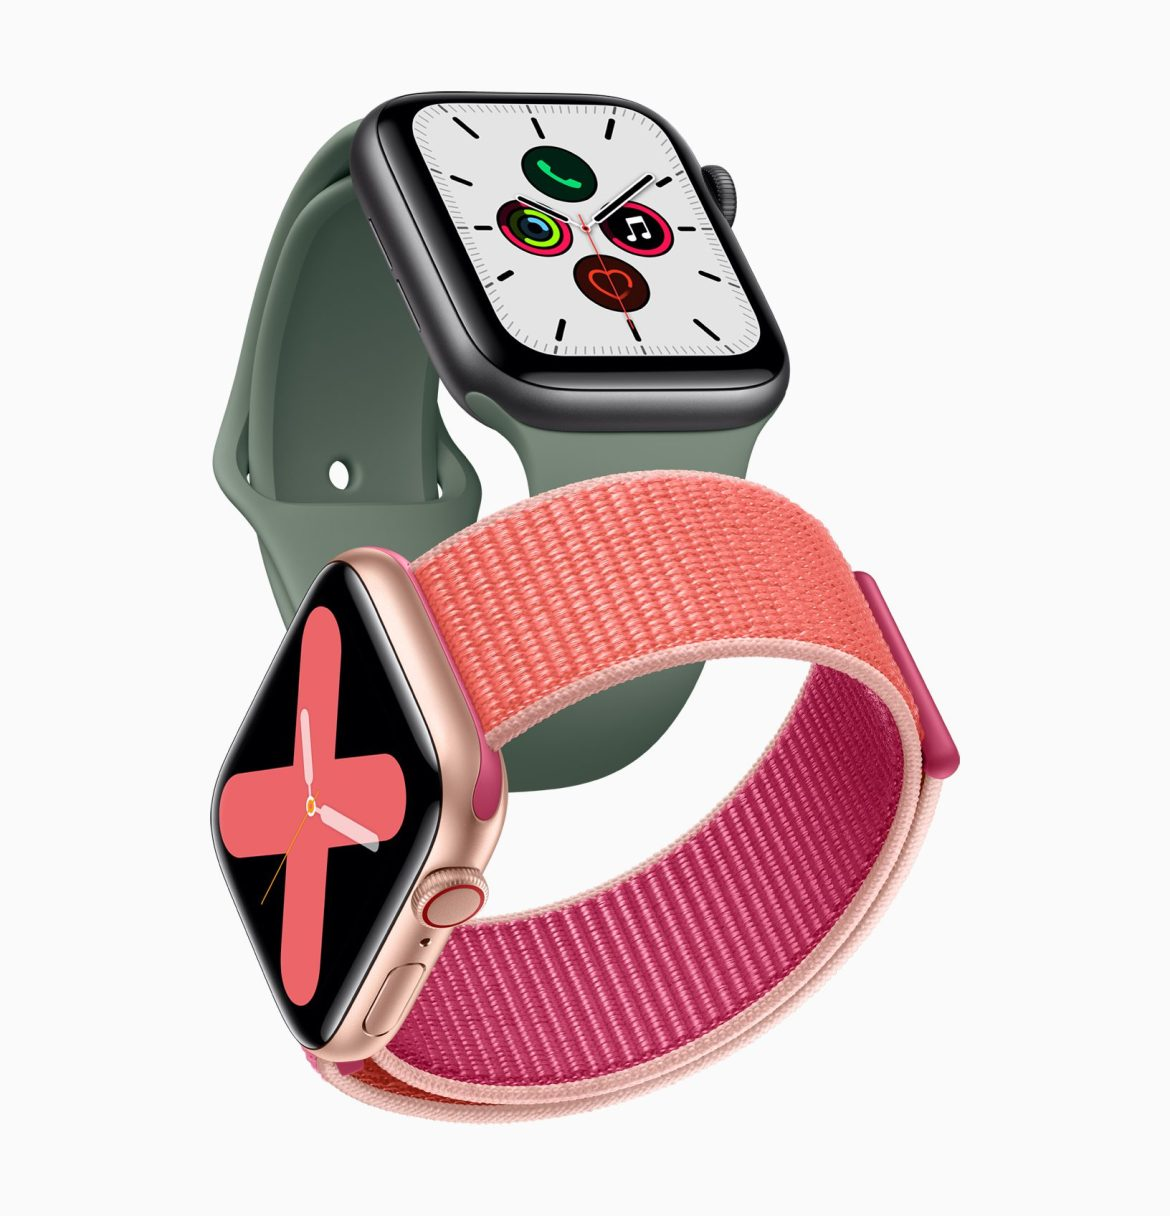 The Apple Watch is still the company's best product